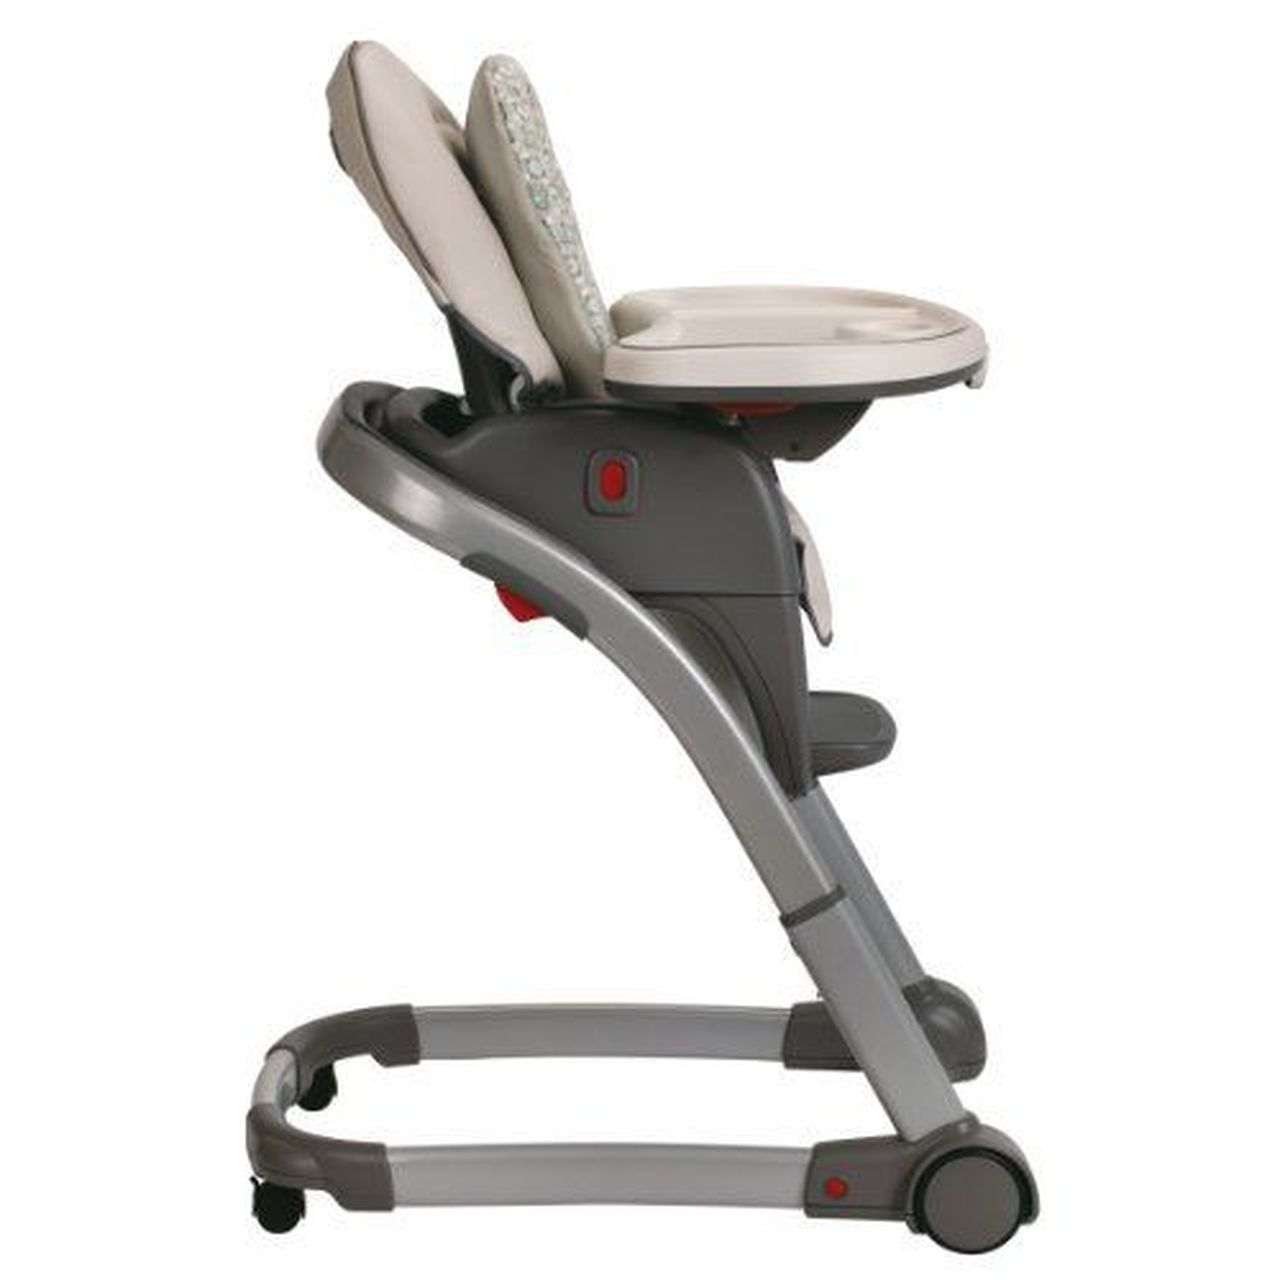 Graco Blossom 4-in-1 Seating System